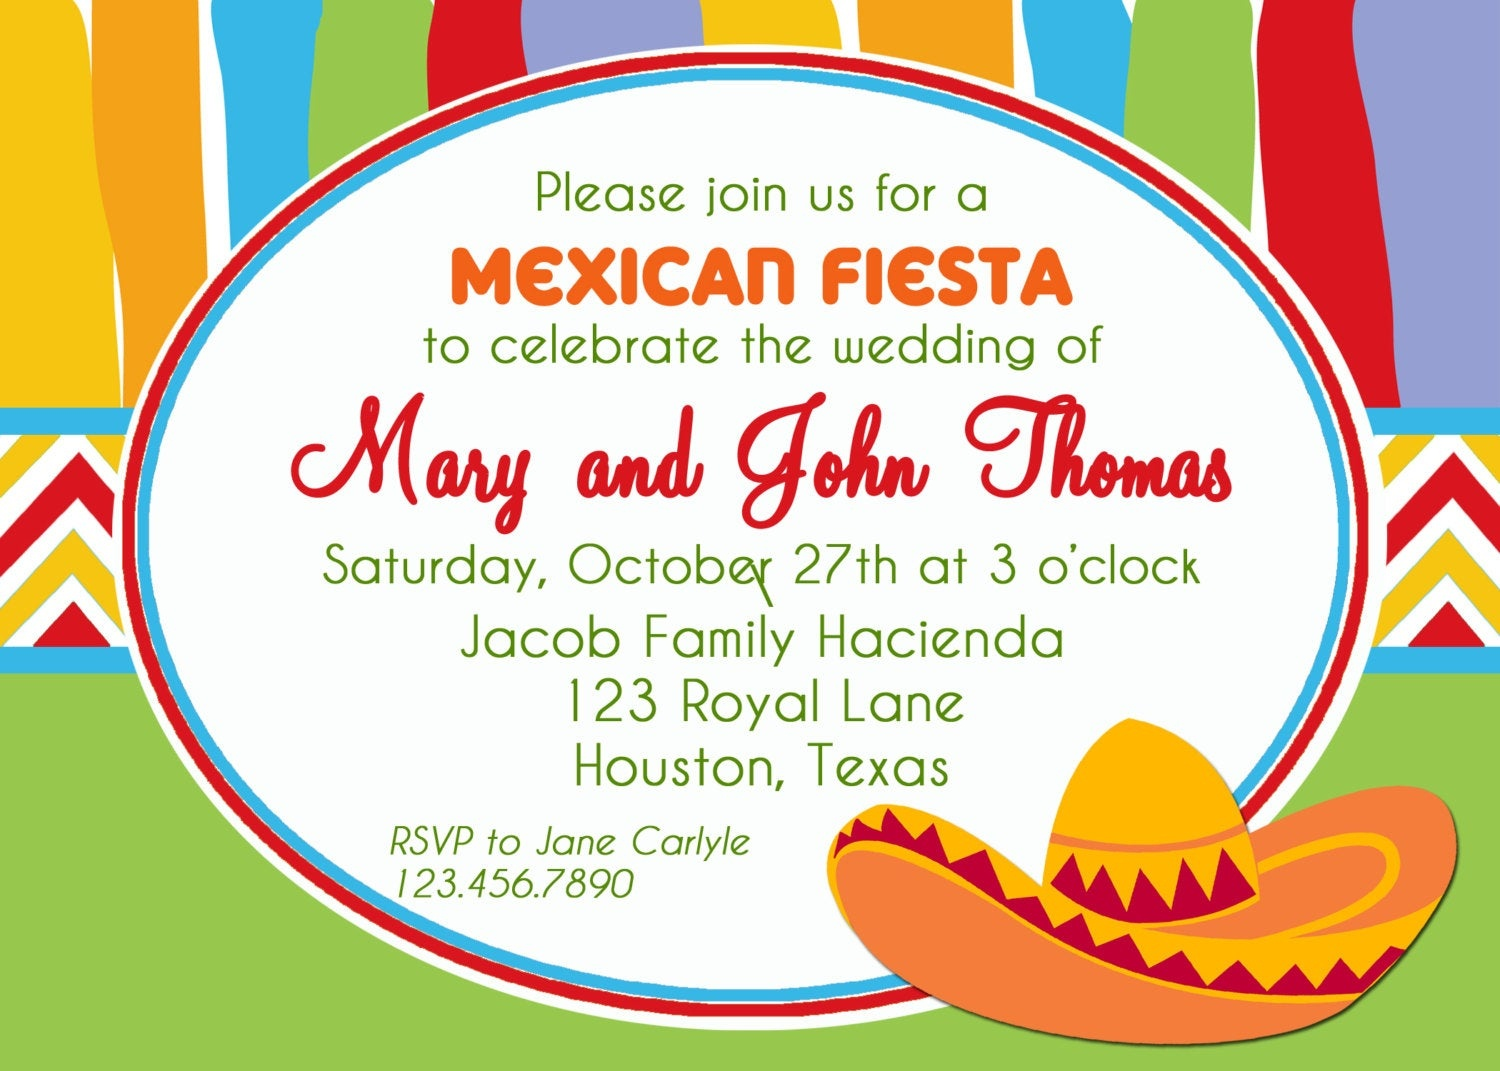 Mexican Fiesta Invitation Printable Or Printed With Free | Etsy - Free Printable Fiesta Invitations